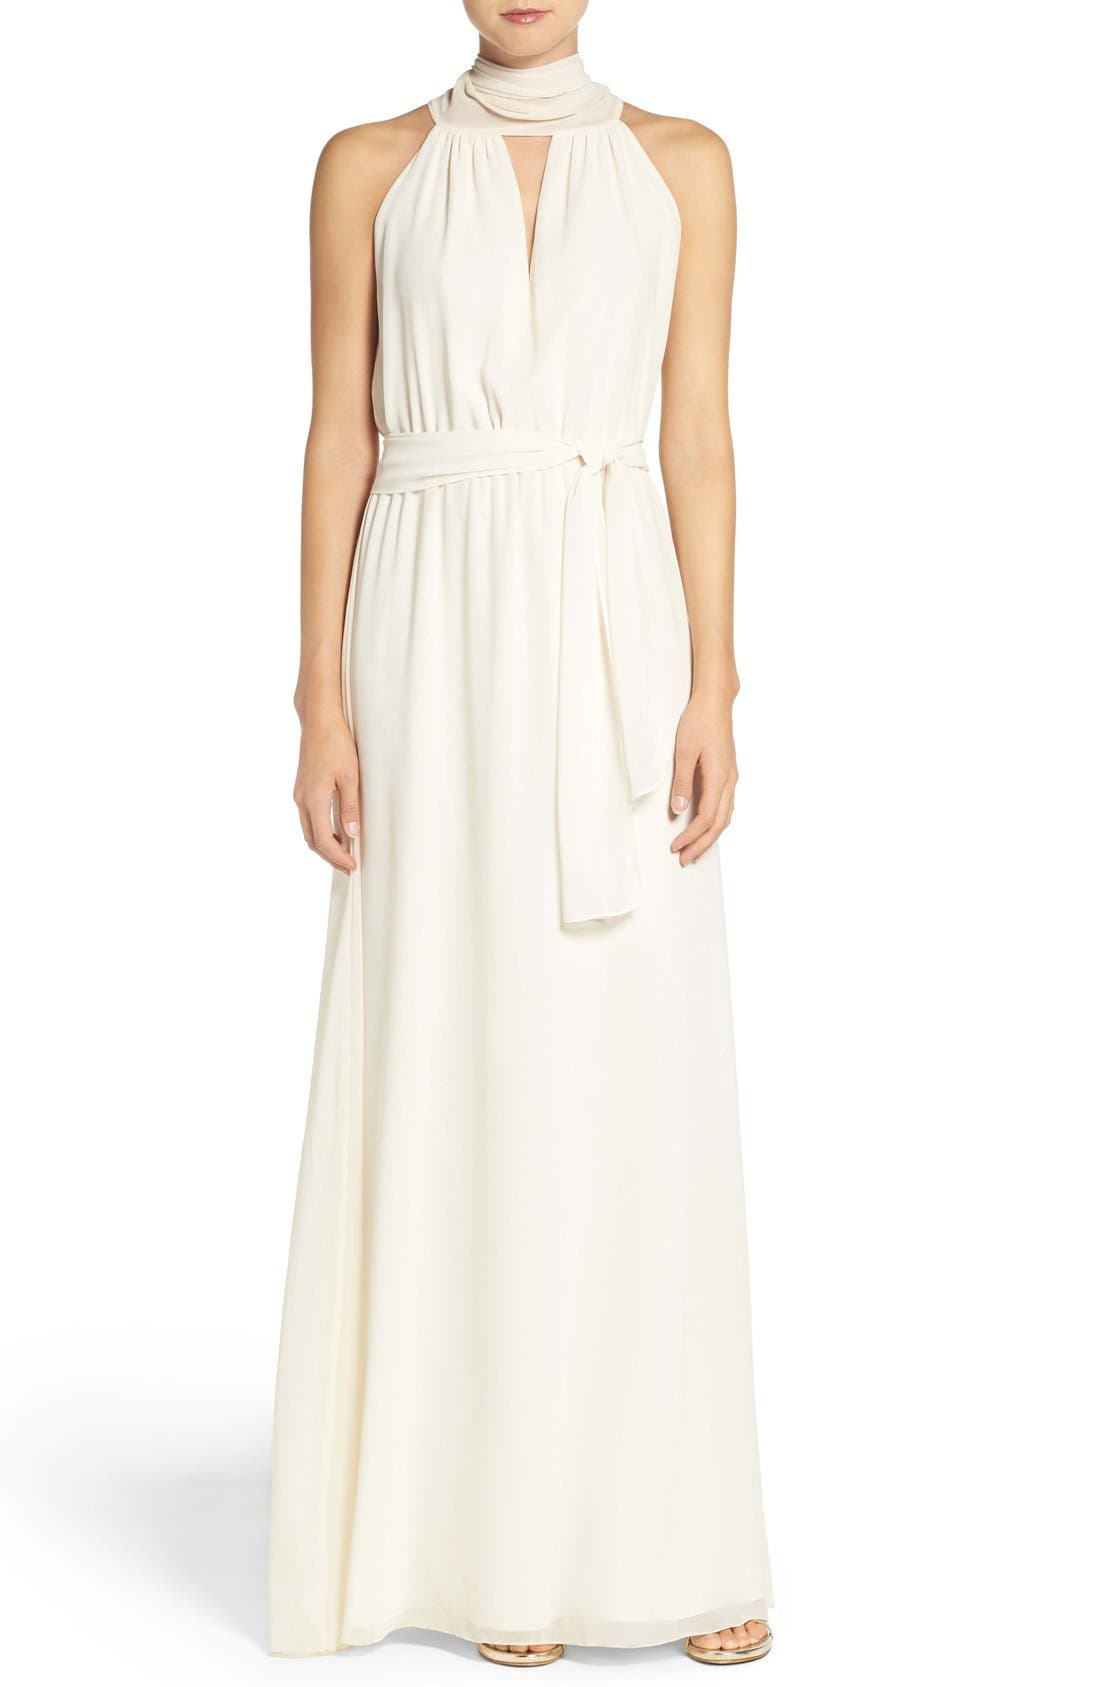 Ceremony by Joanna August 'Riggs' Halter V-Neck Chiffon Gown